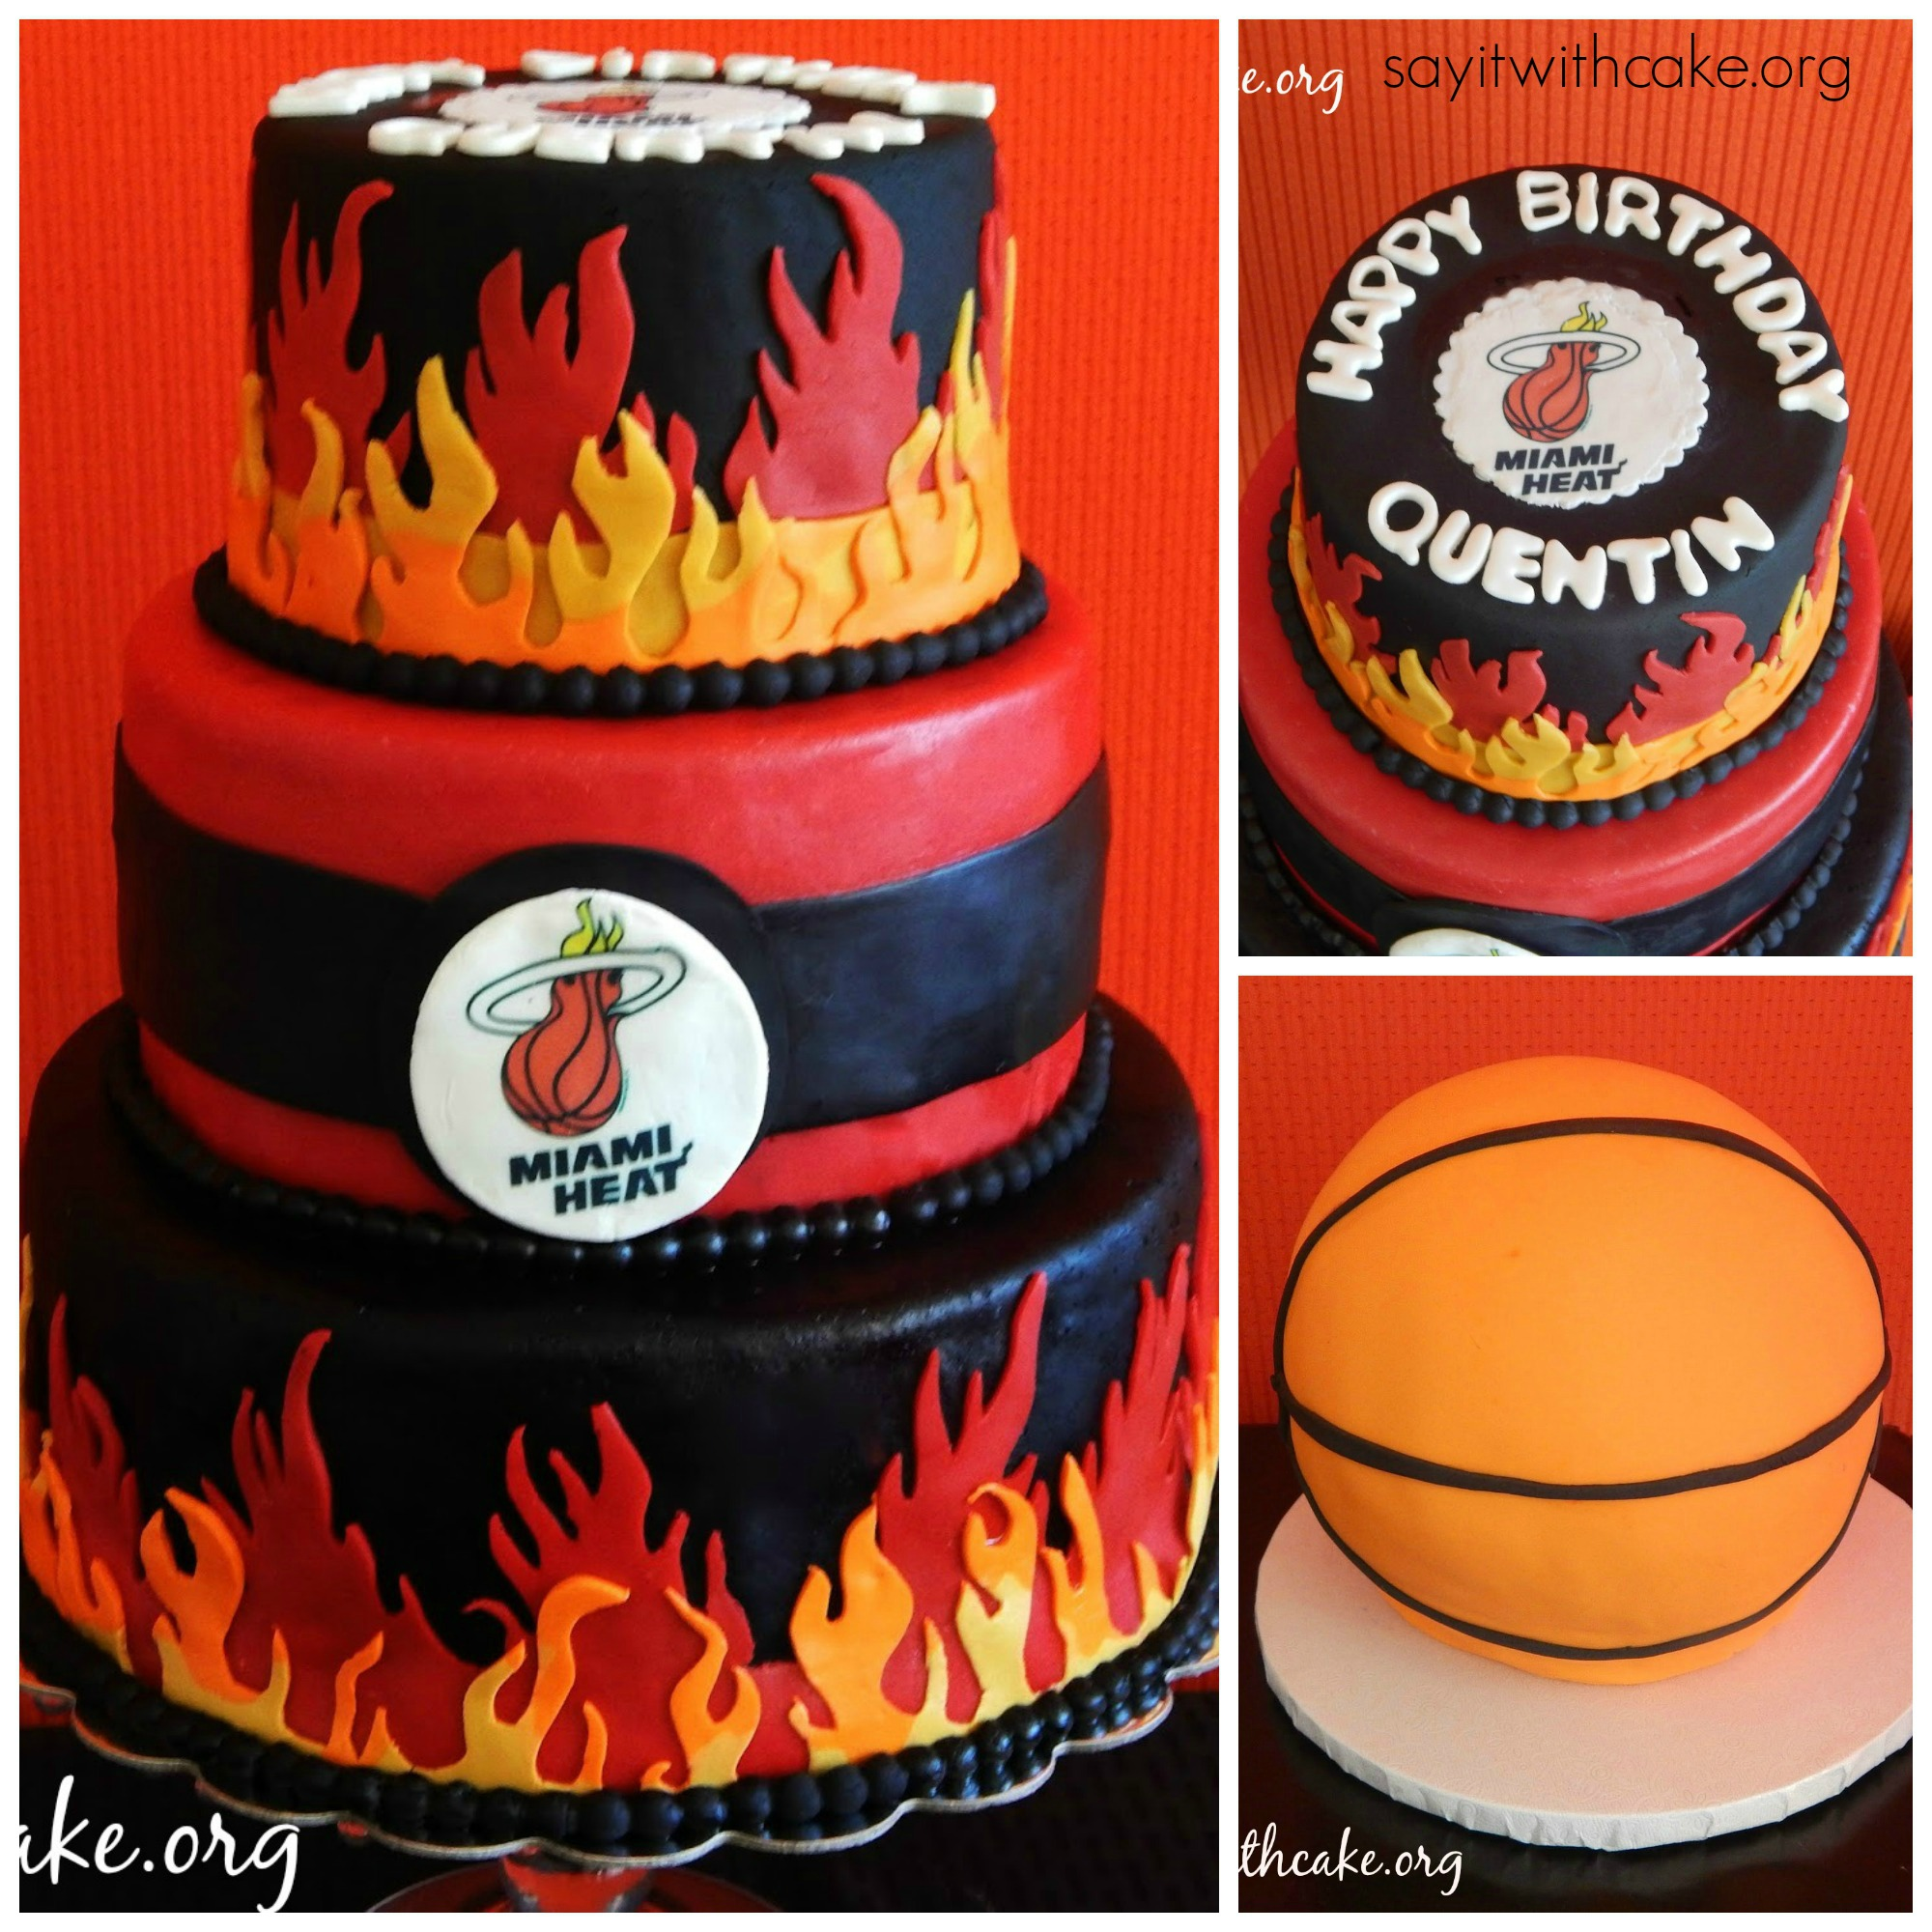 Miami Heat: Say It With Cake